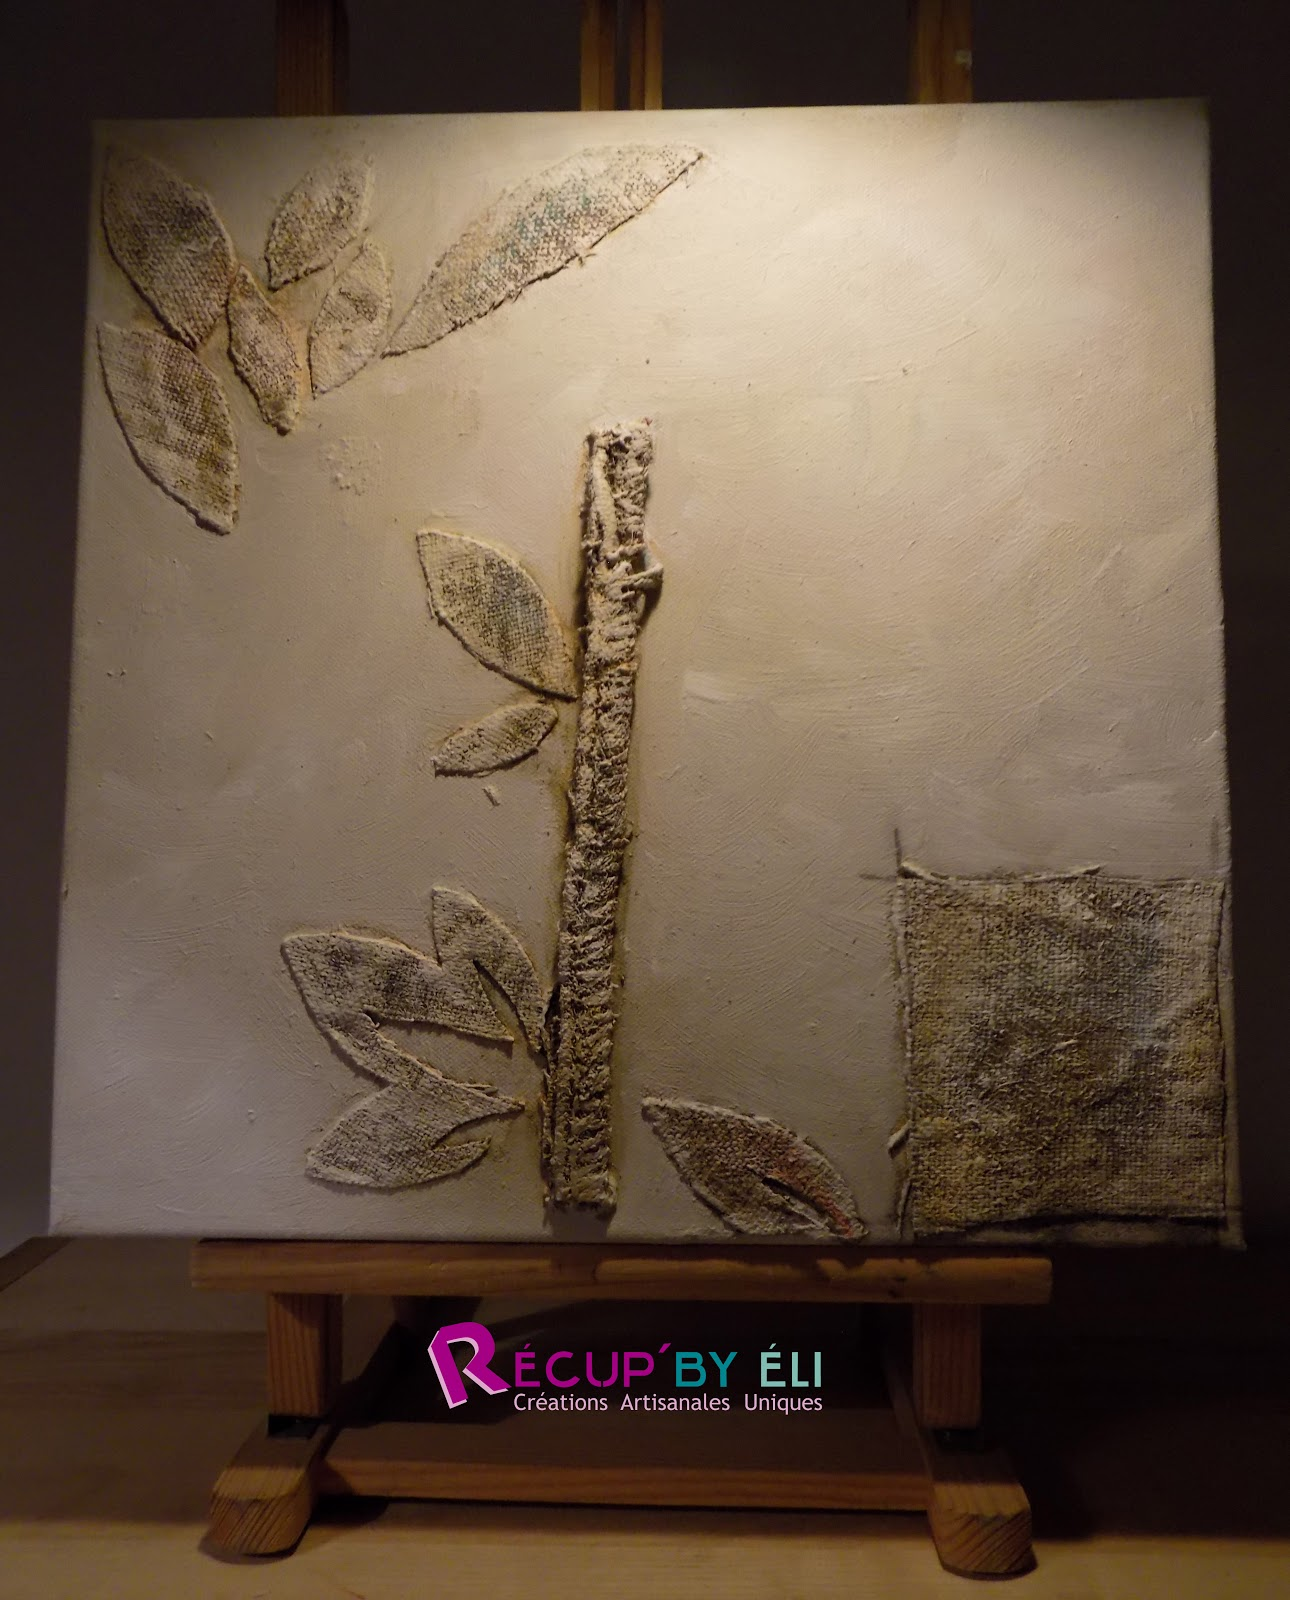 d coration murale tableaux artistiques sur toile jute. Black Bedroom Furniture Sets. Home Design Ideas